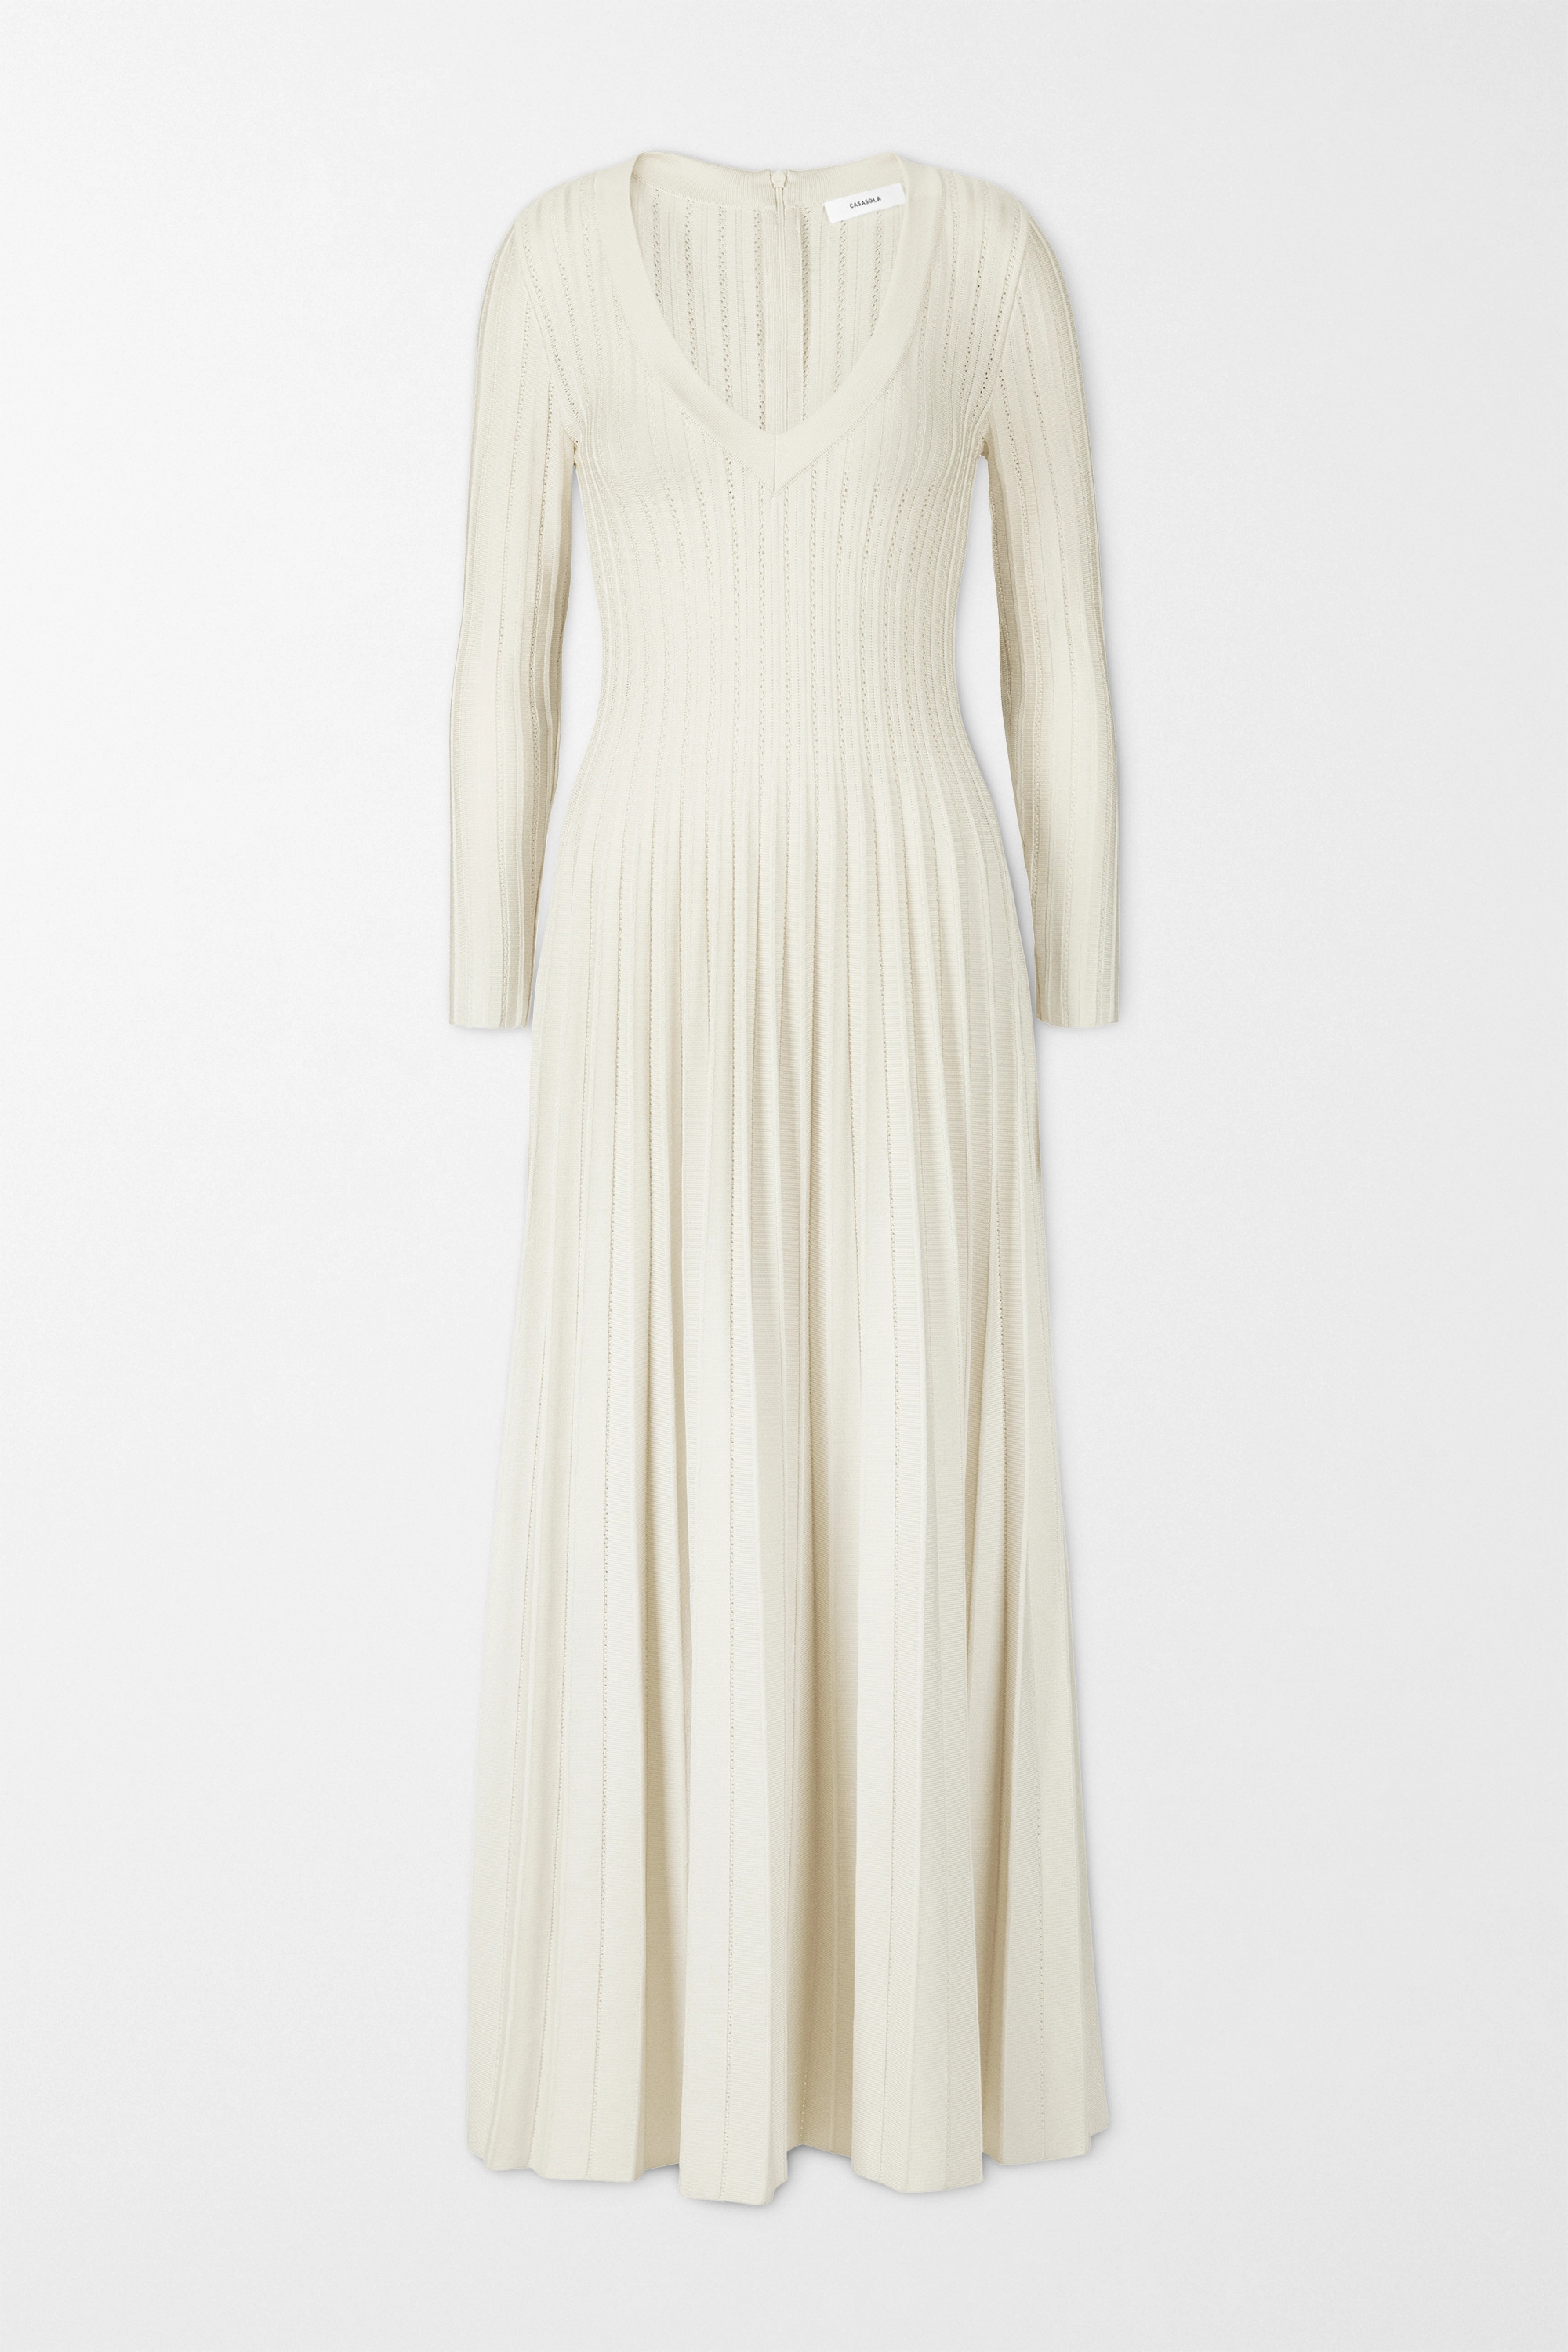 CASASOLA + NET SUSTAIN Ada ribbed-knit midi dress